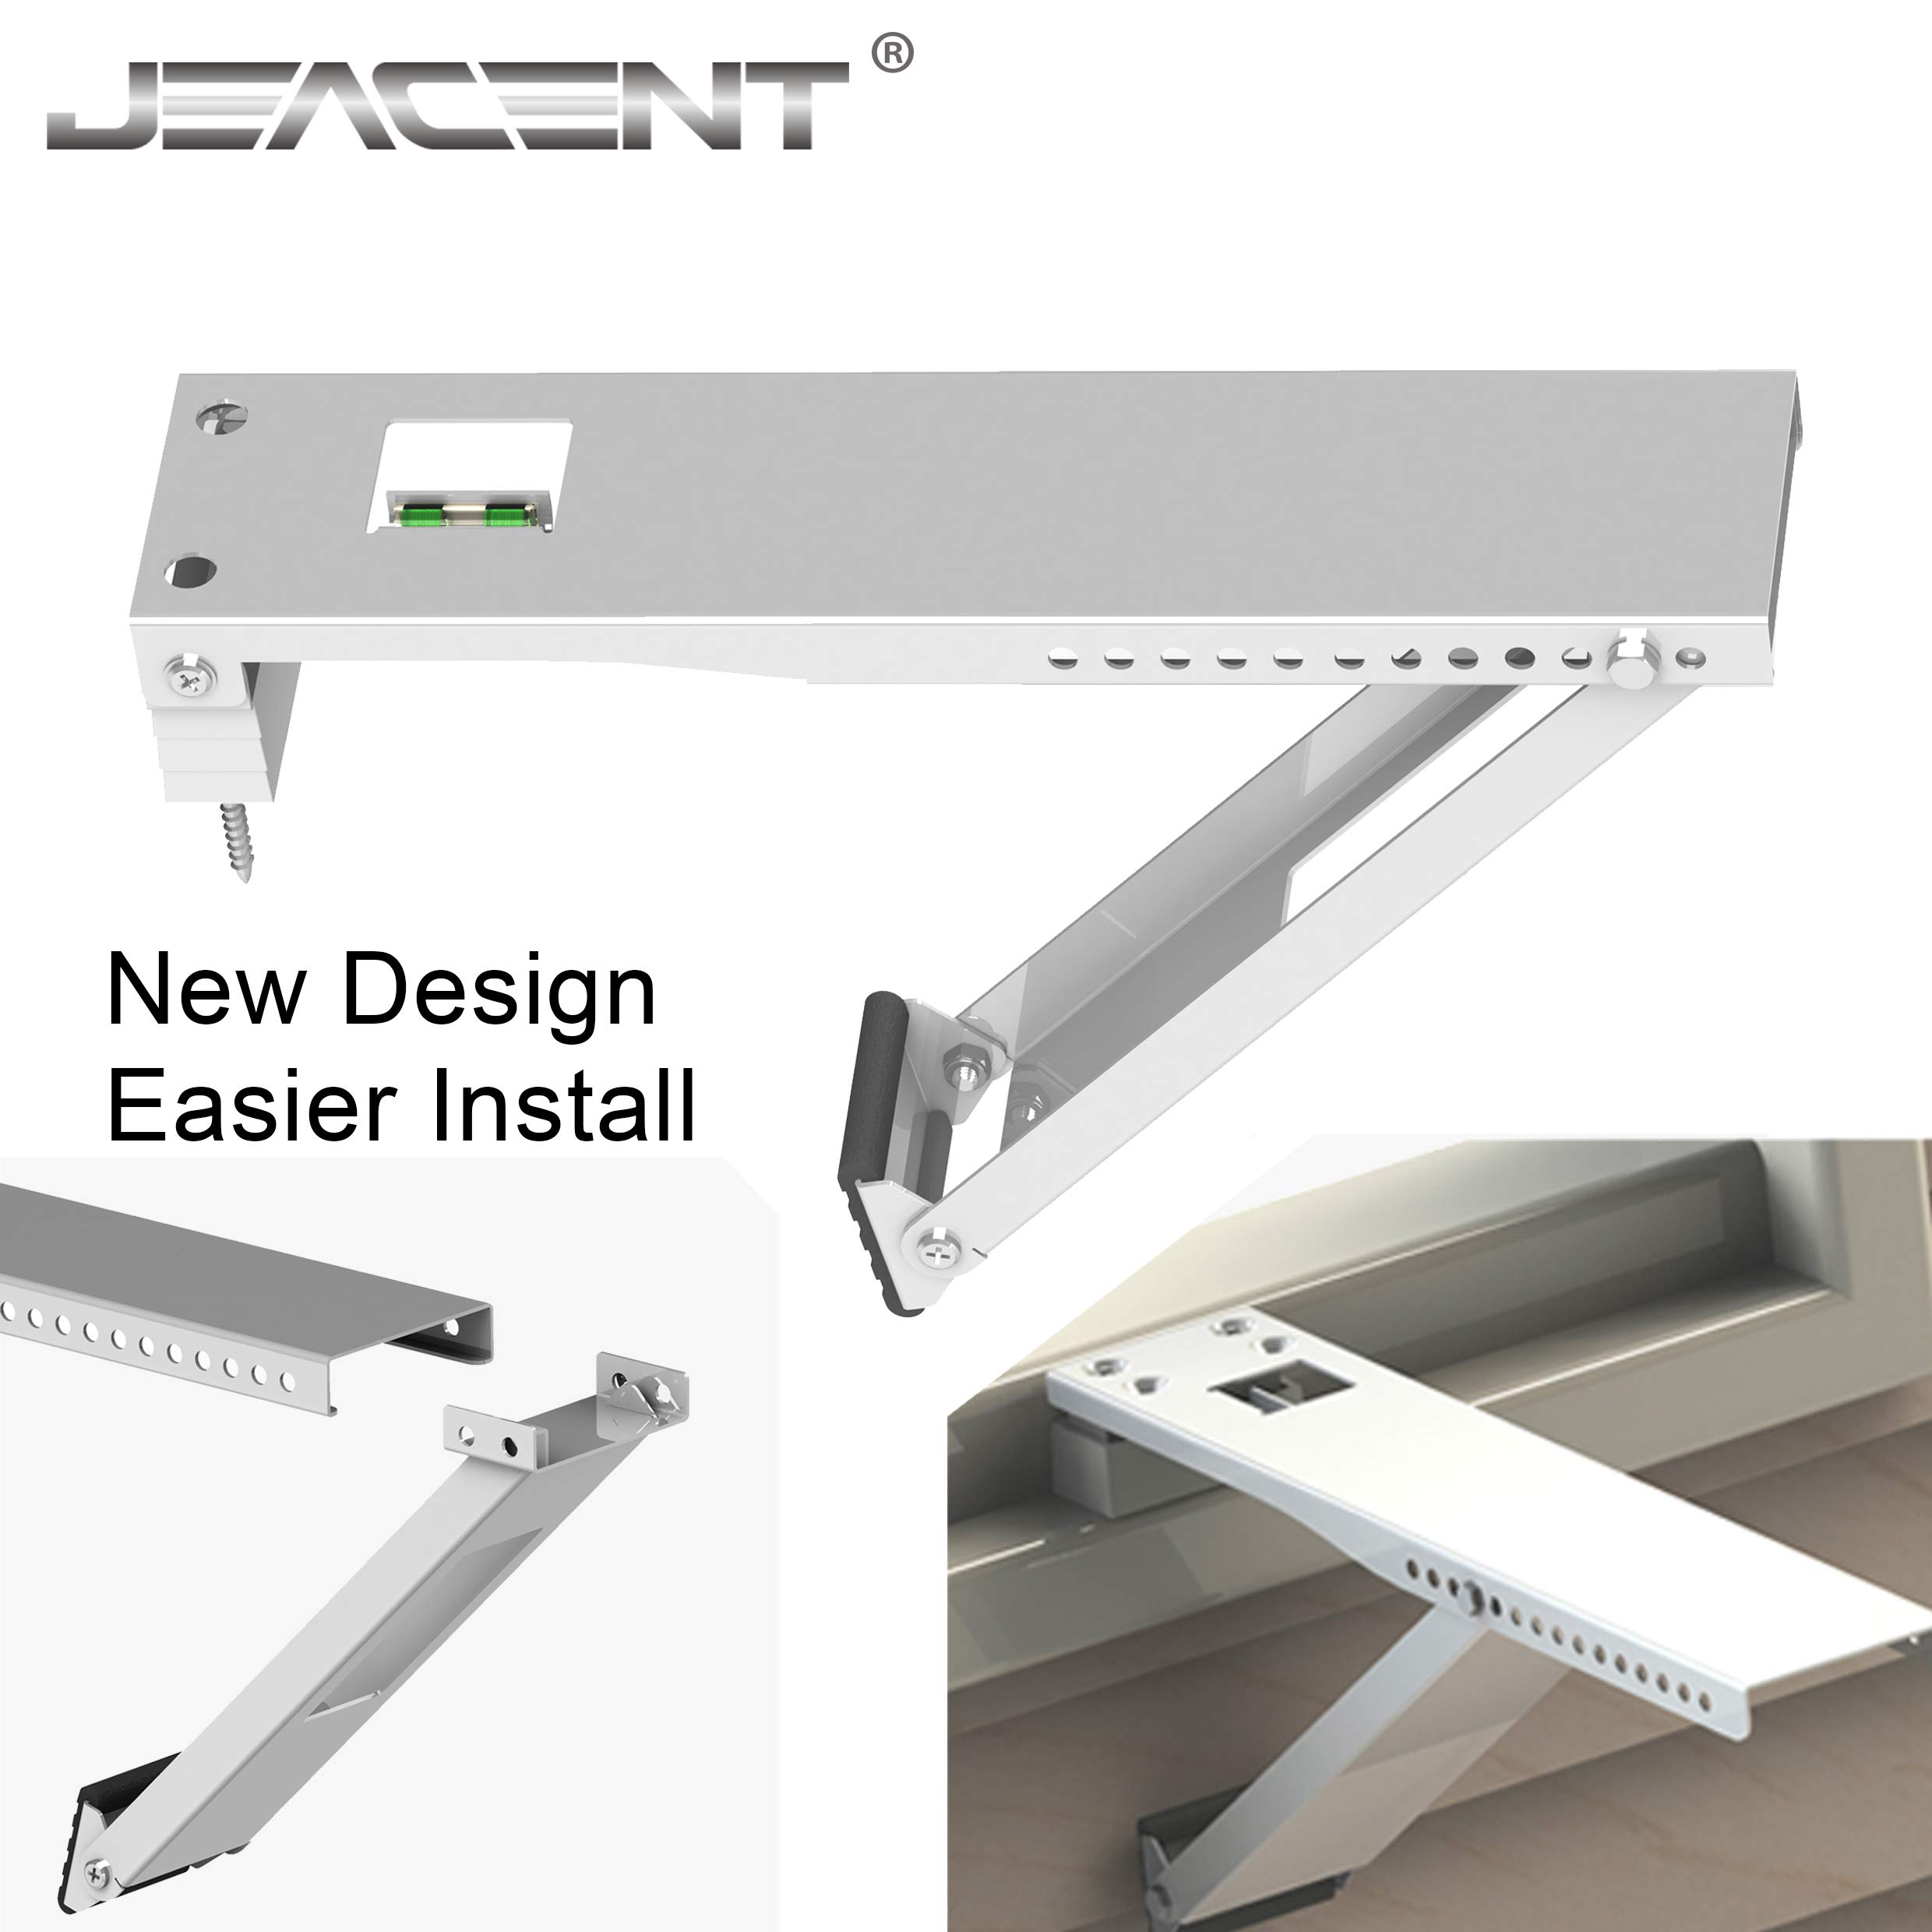 Jeacent Universal AC Window Bracket, Air Conditioner Support Bracket Heavy Duty, Up to 85 lbs - 13.5 inches Arm for Small A/C Units